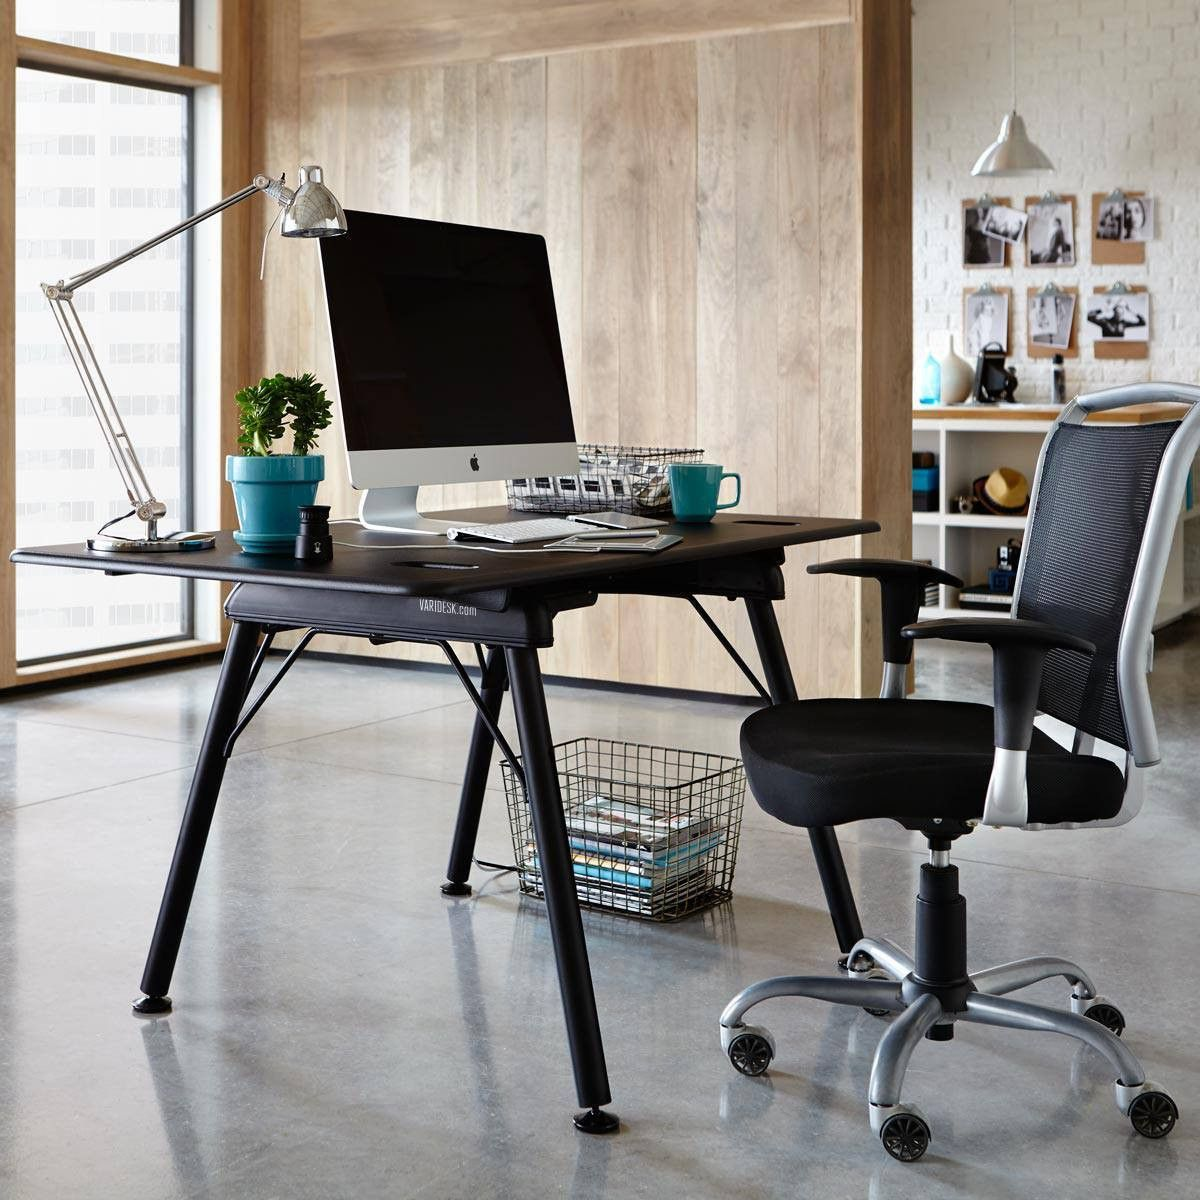 The Pro Desk 54 Is Perfect For A Home Office Or Anyone Who Needs Plenty